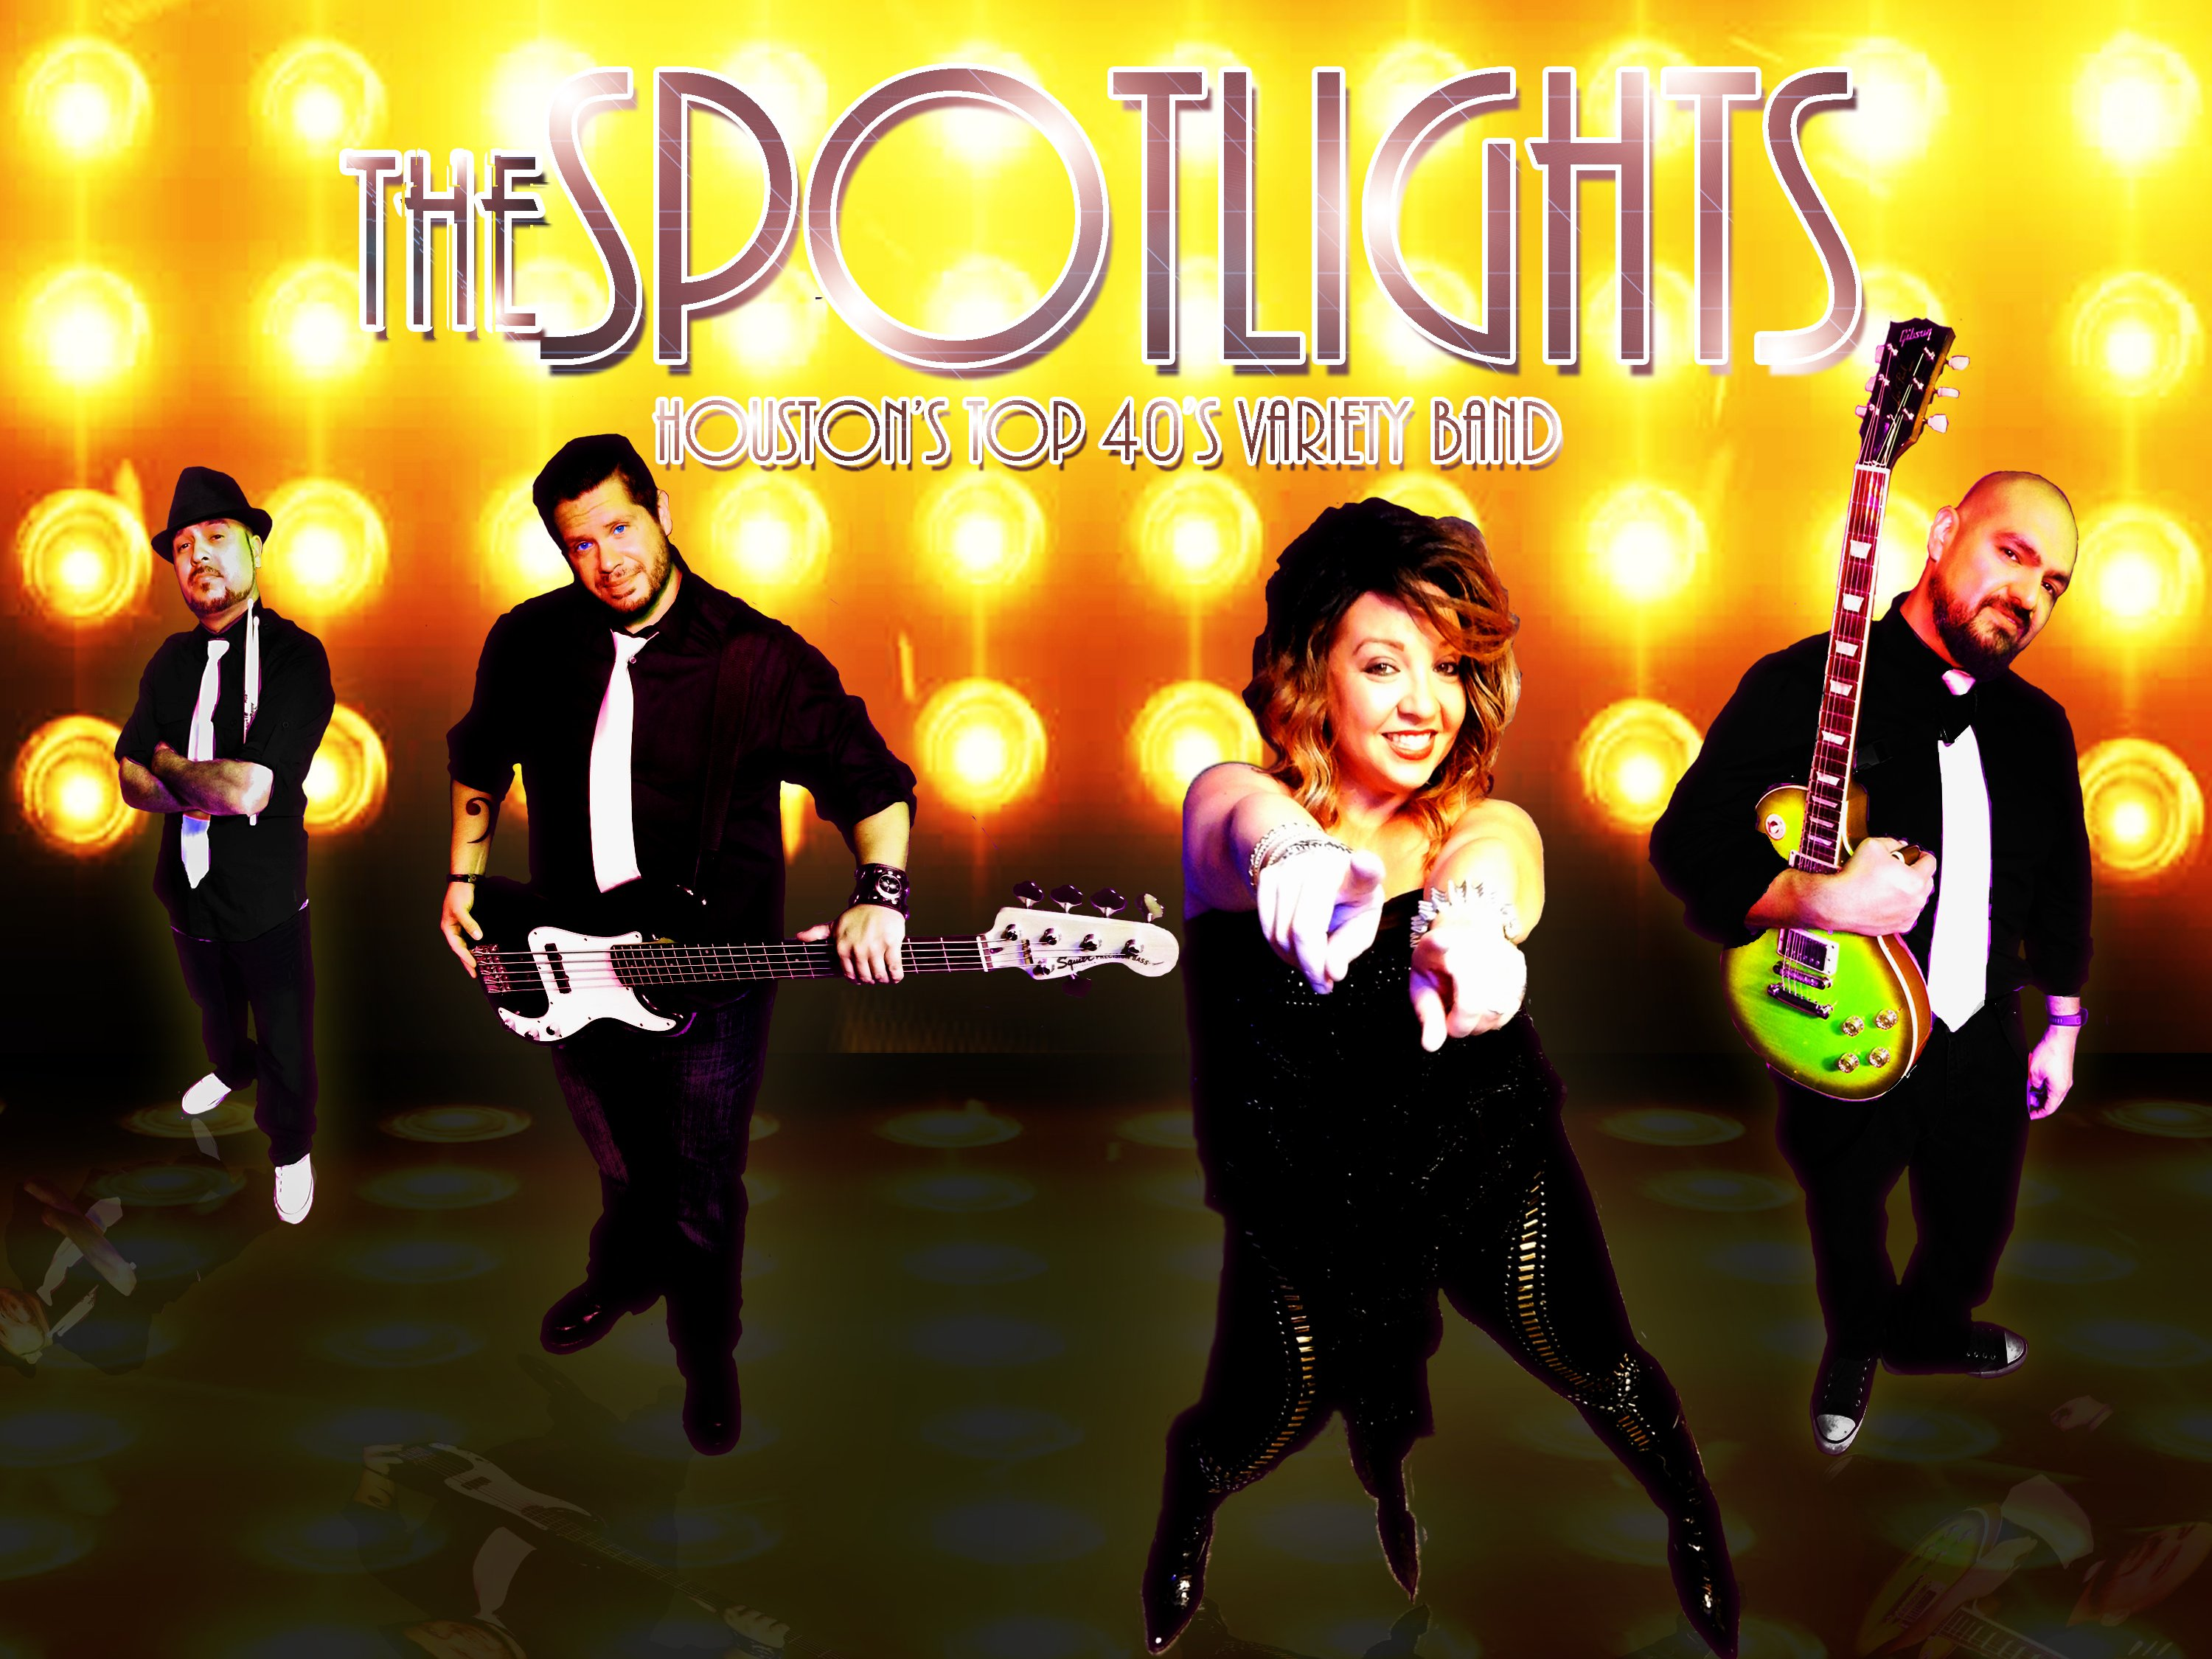 Image for The Spotlights